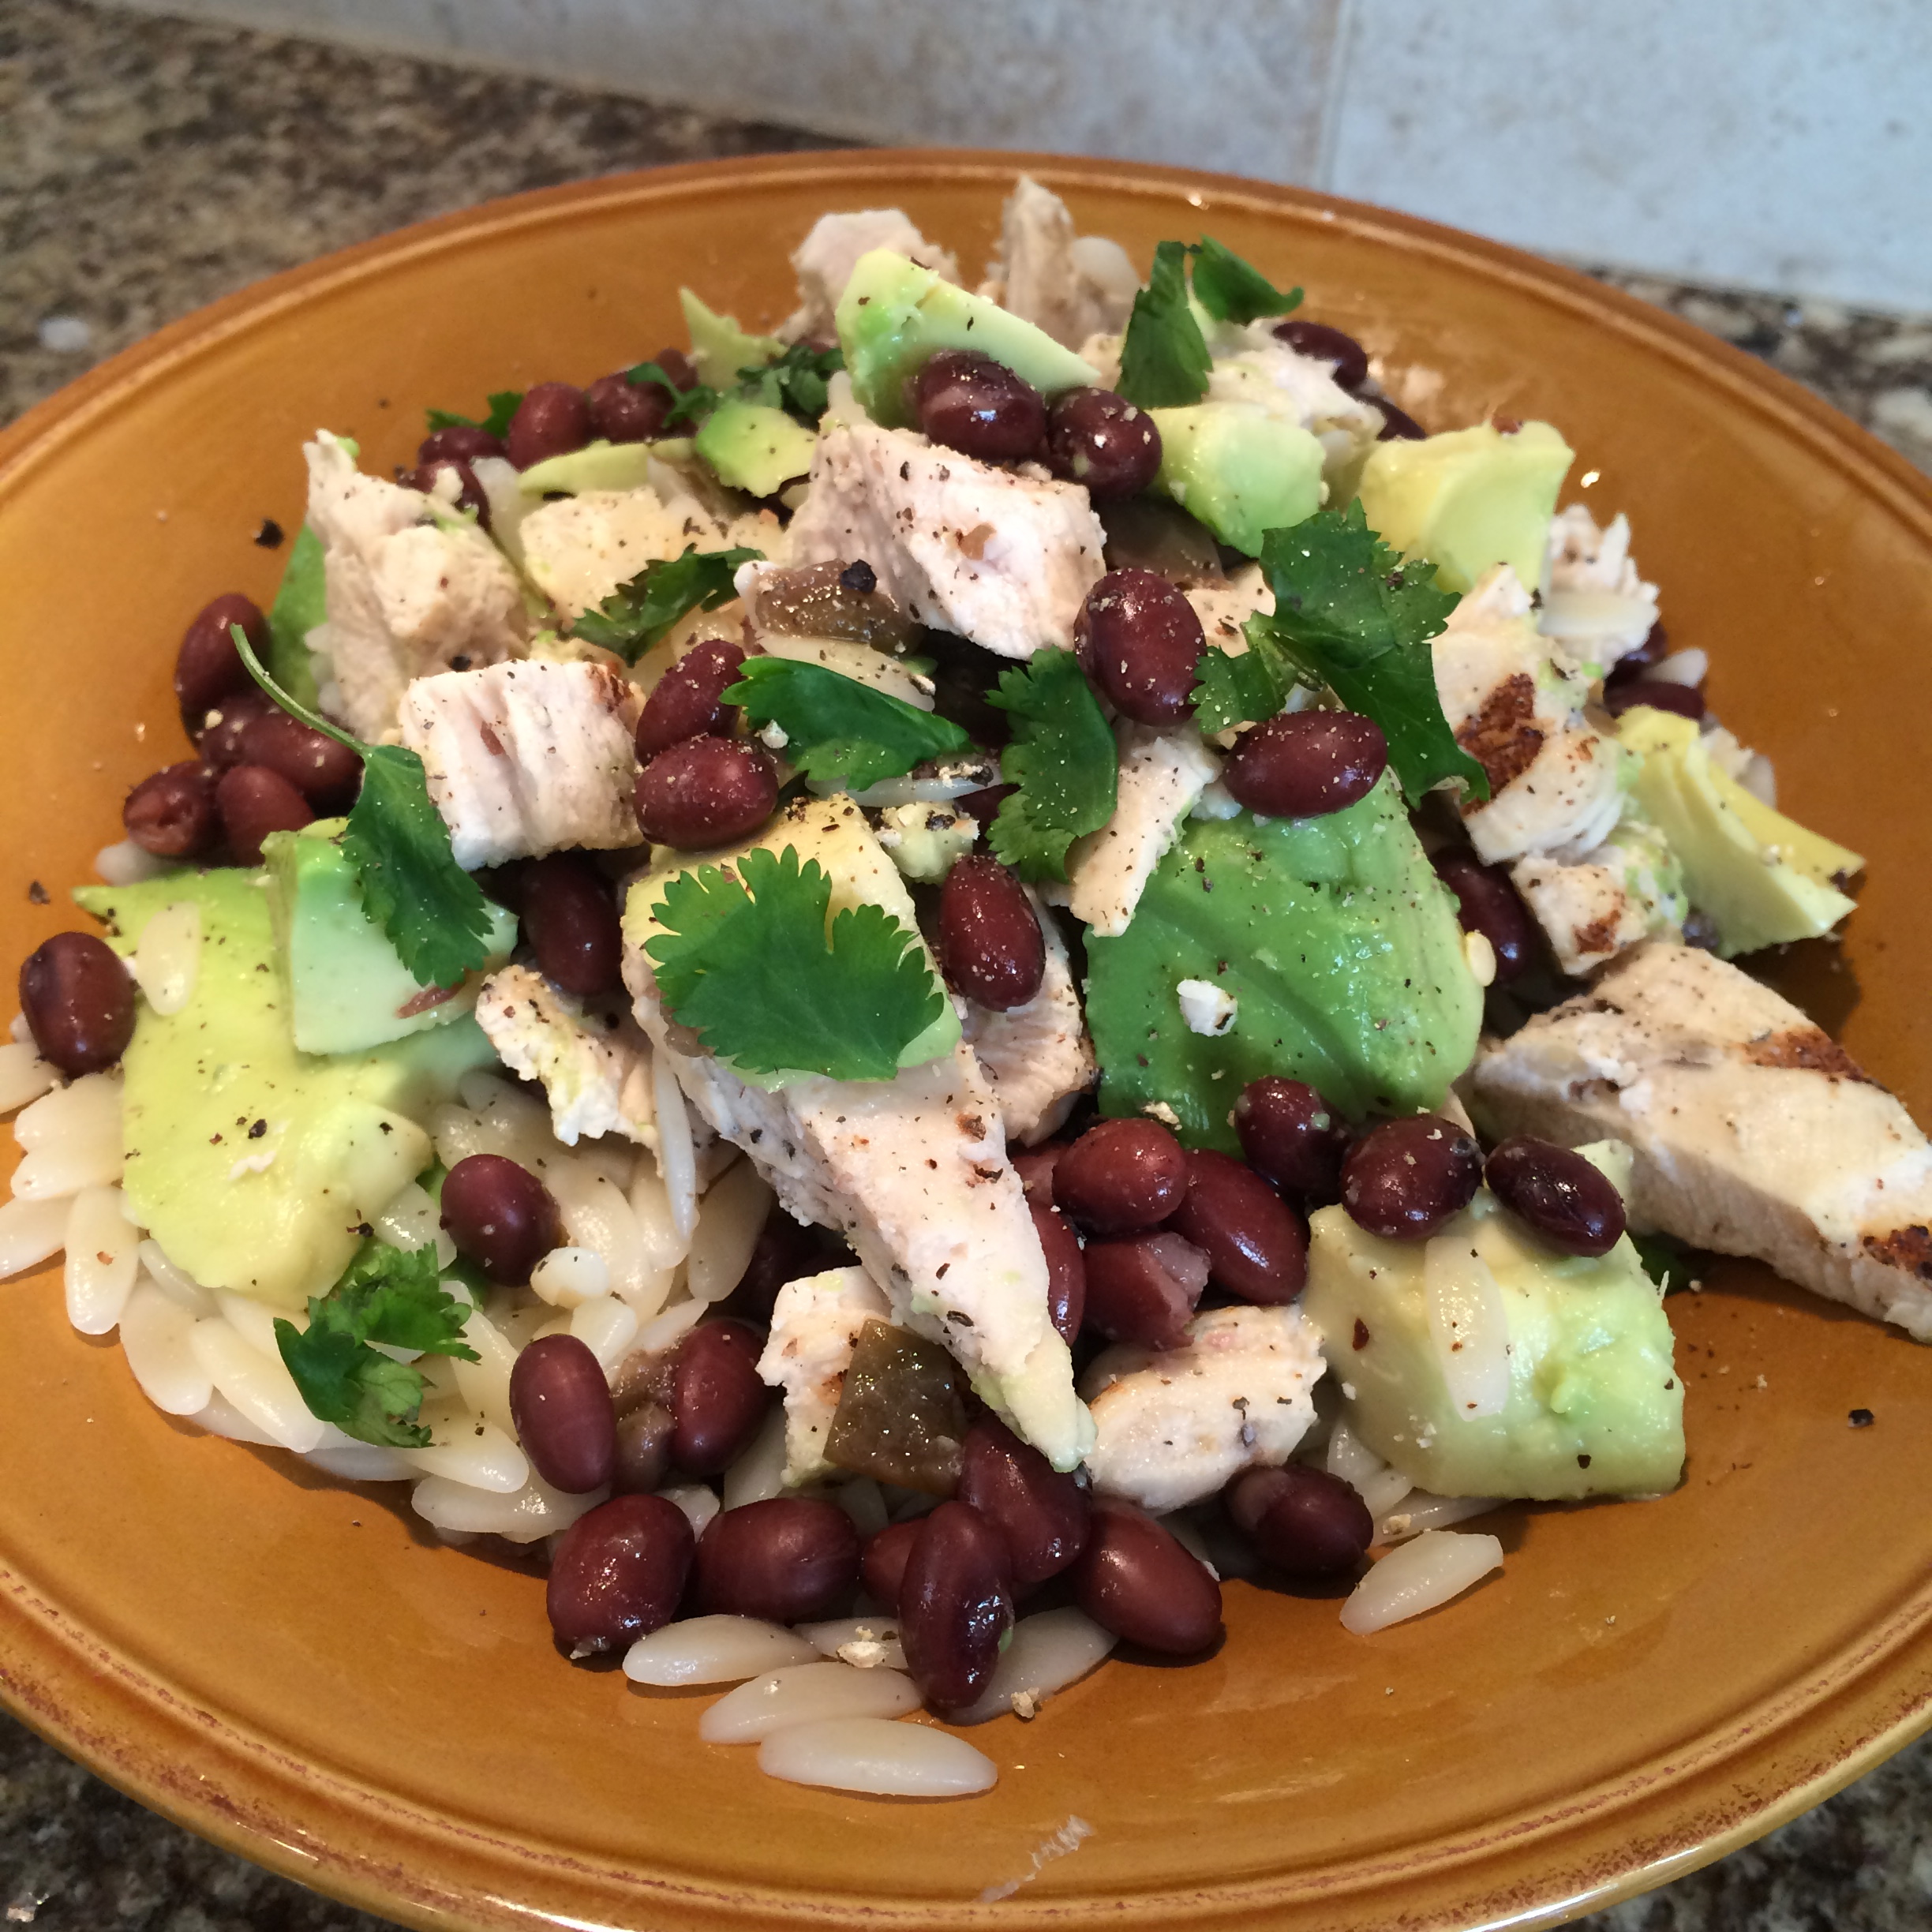 Orzo with Black Beans and Avocado Salad